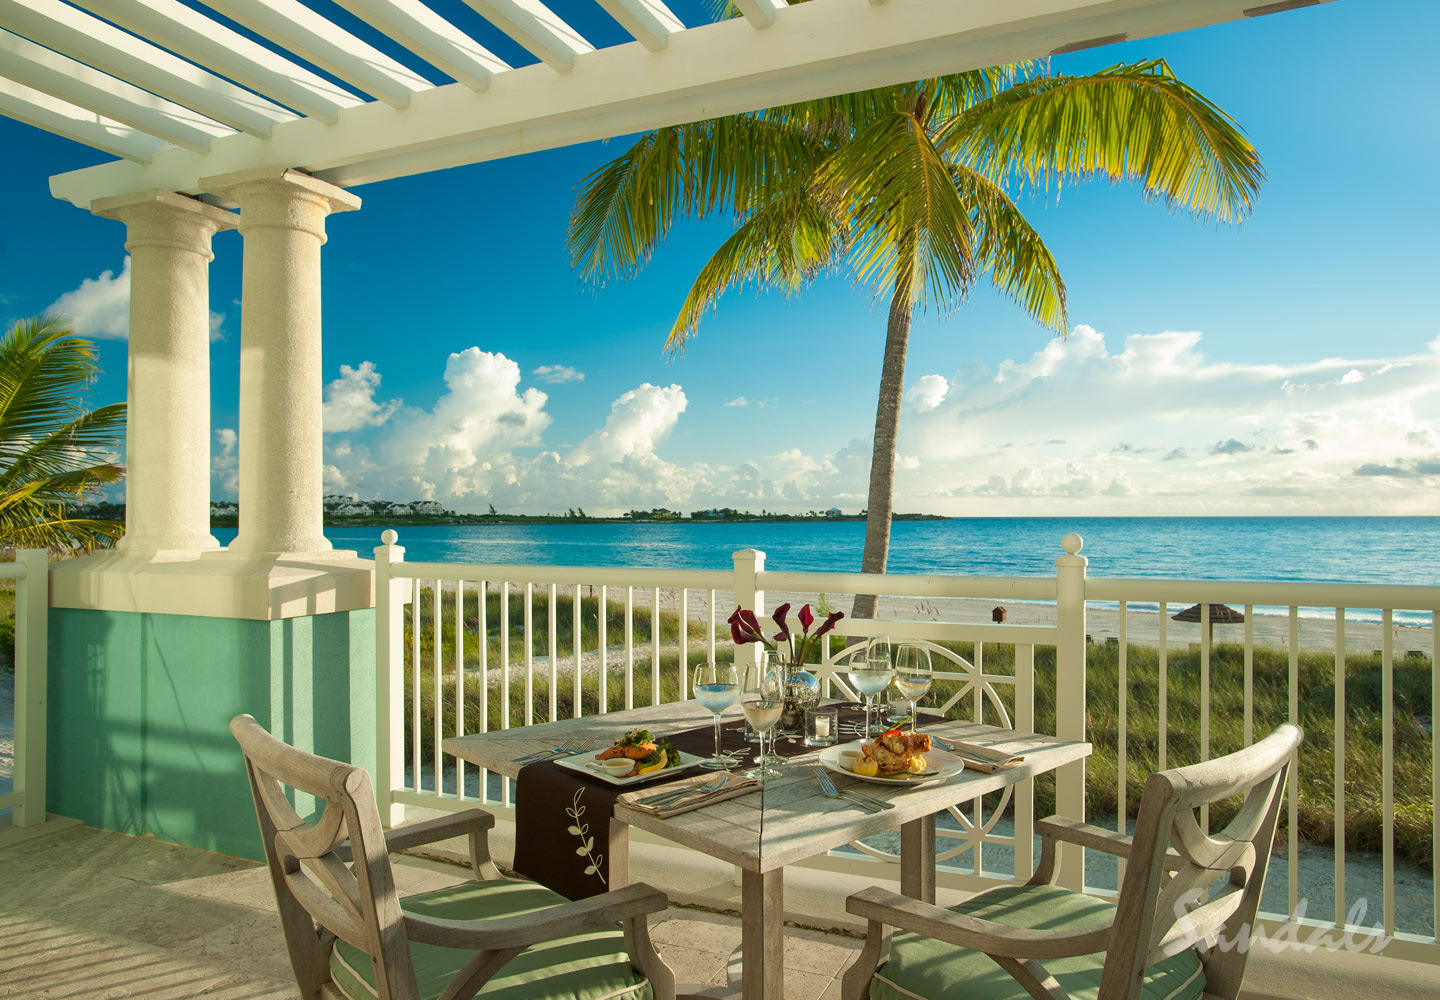 Travel Agency All-Inclusive Resort Sandals Emerald Bay 105